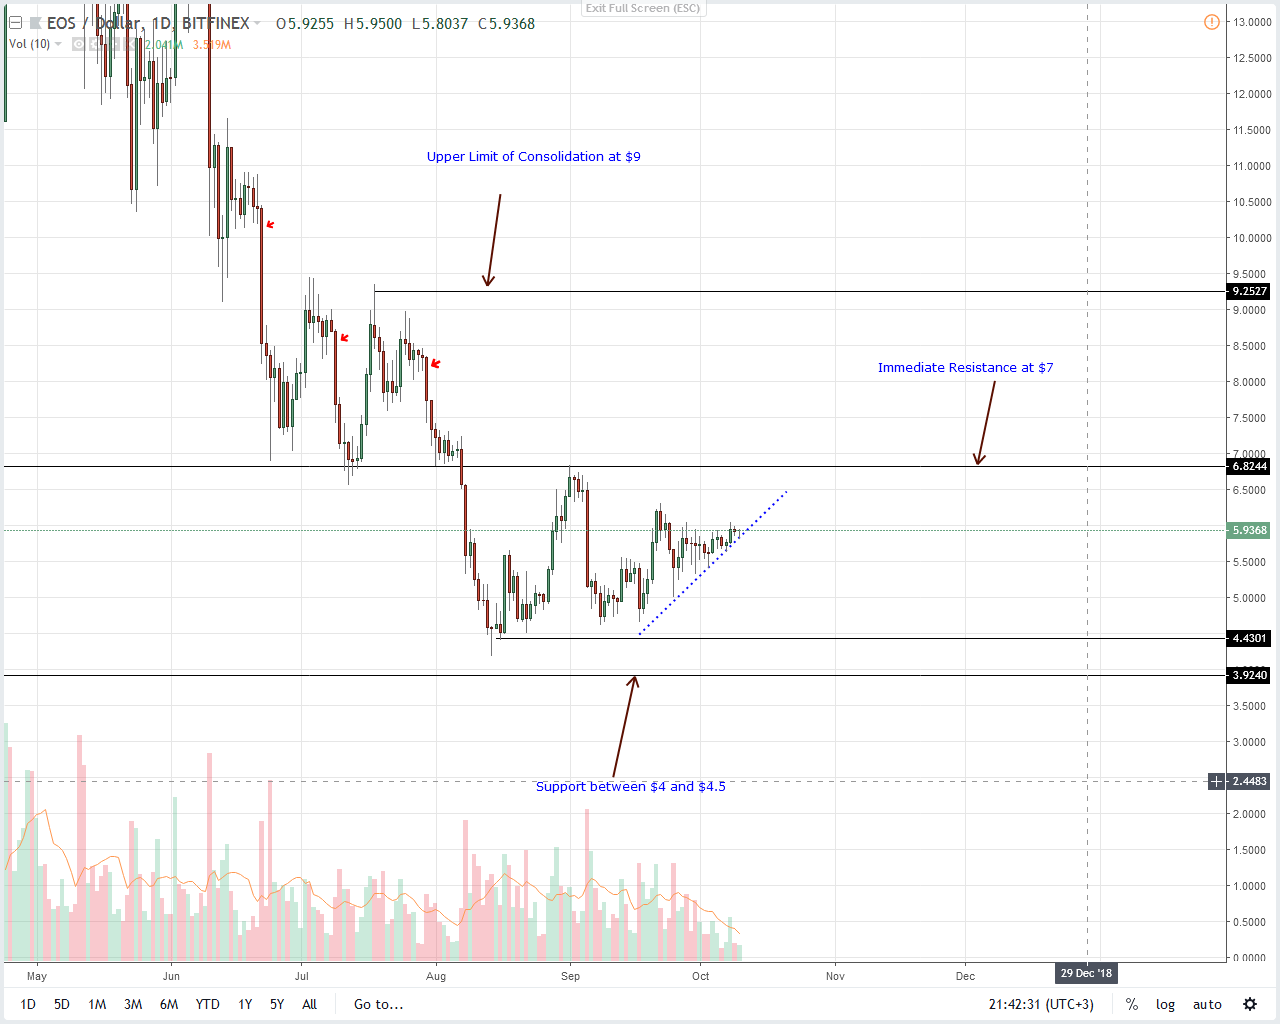 EOS Daily Chart Oct 11